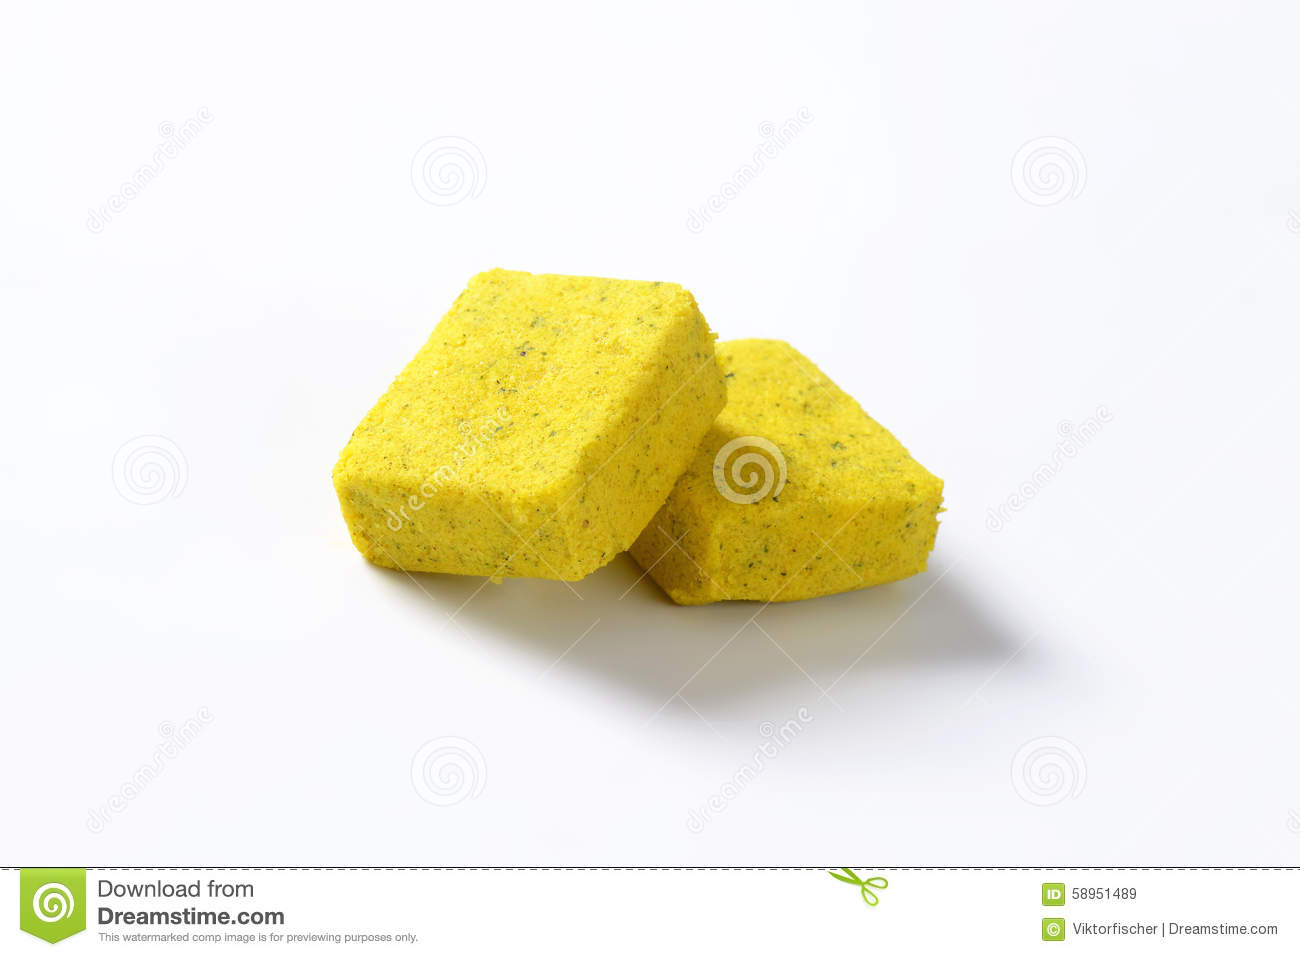 Bouillon cubes stock image  Image of vegetable, dried - 58951489